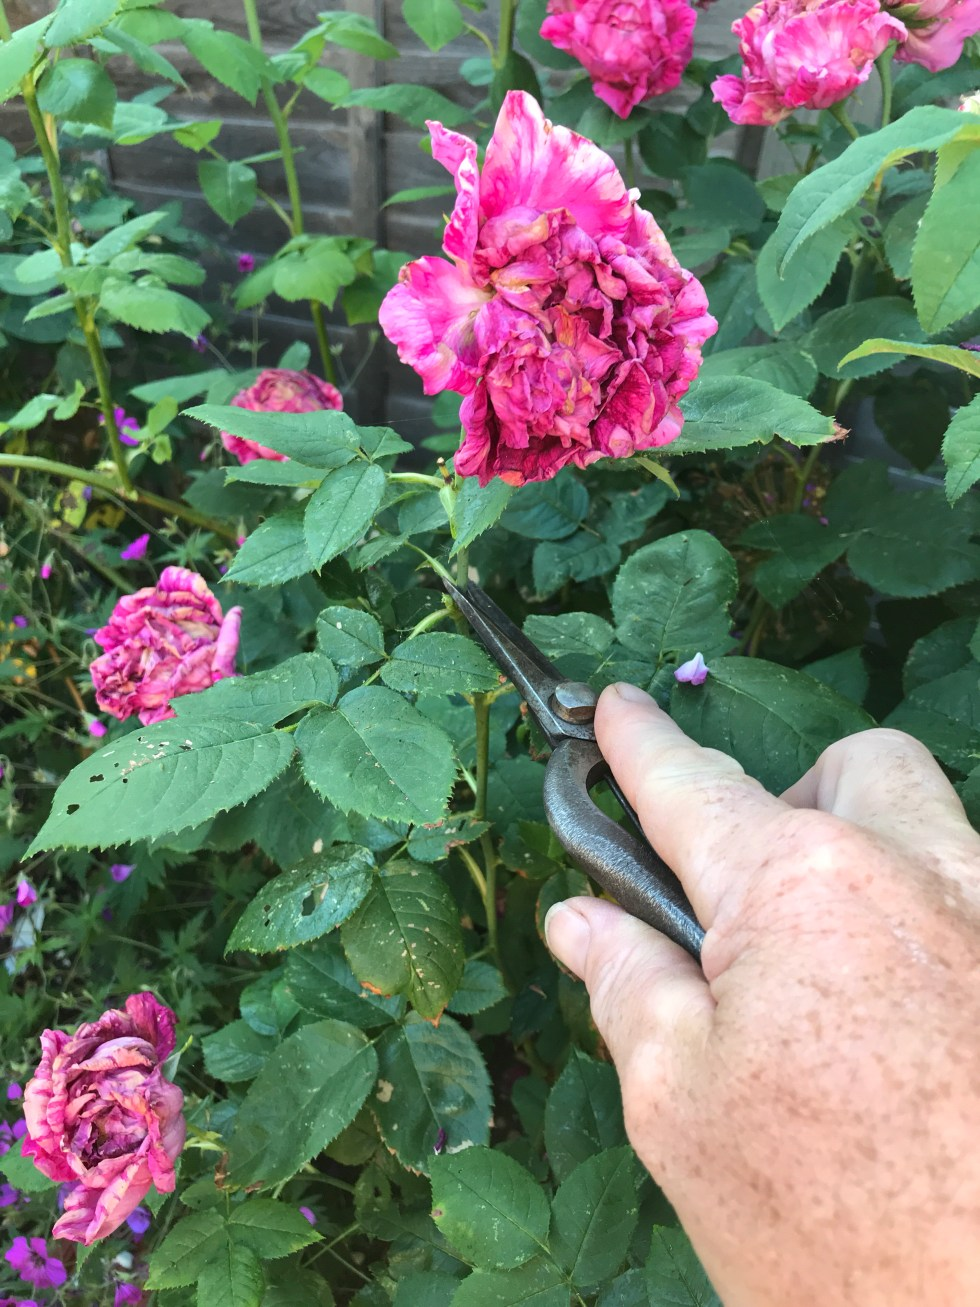 84ef0e74 c936 4fd8 87bd 55b51efc65c2 9665 000006ff607b6f9f file Dead heading and summer pruning on roses